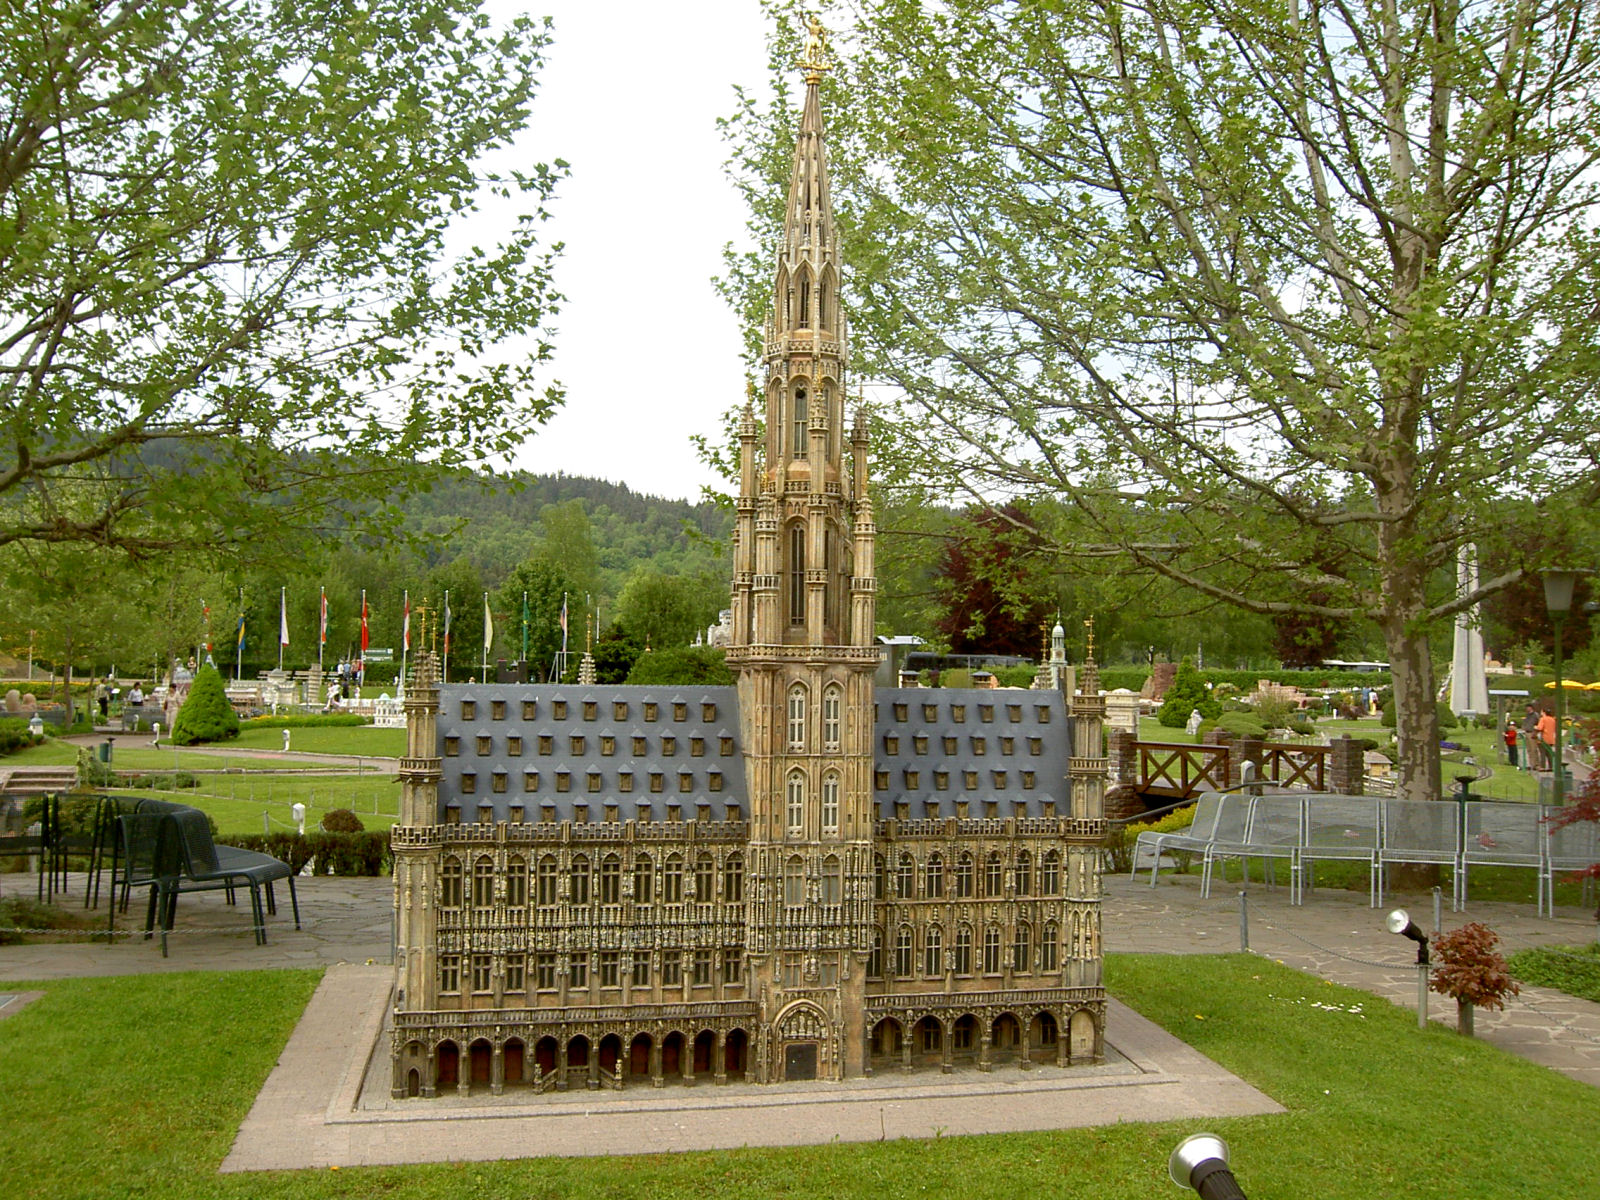 Brussels Town Hall displayed at the Minimundus miniature park in Klagenfurt, Austria